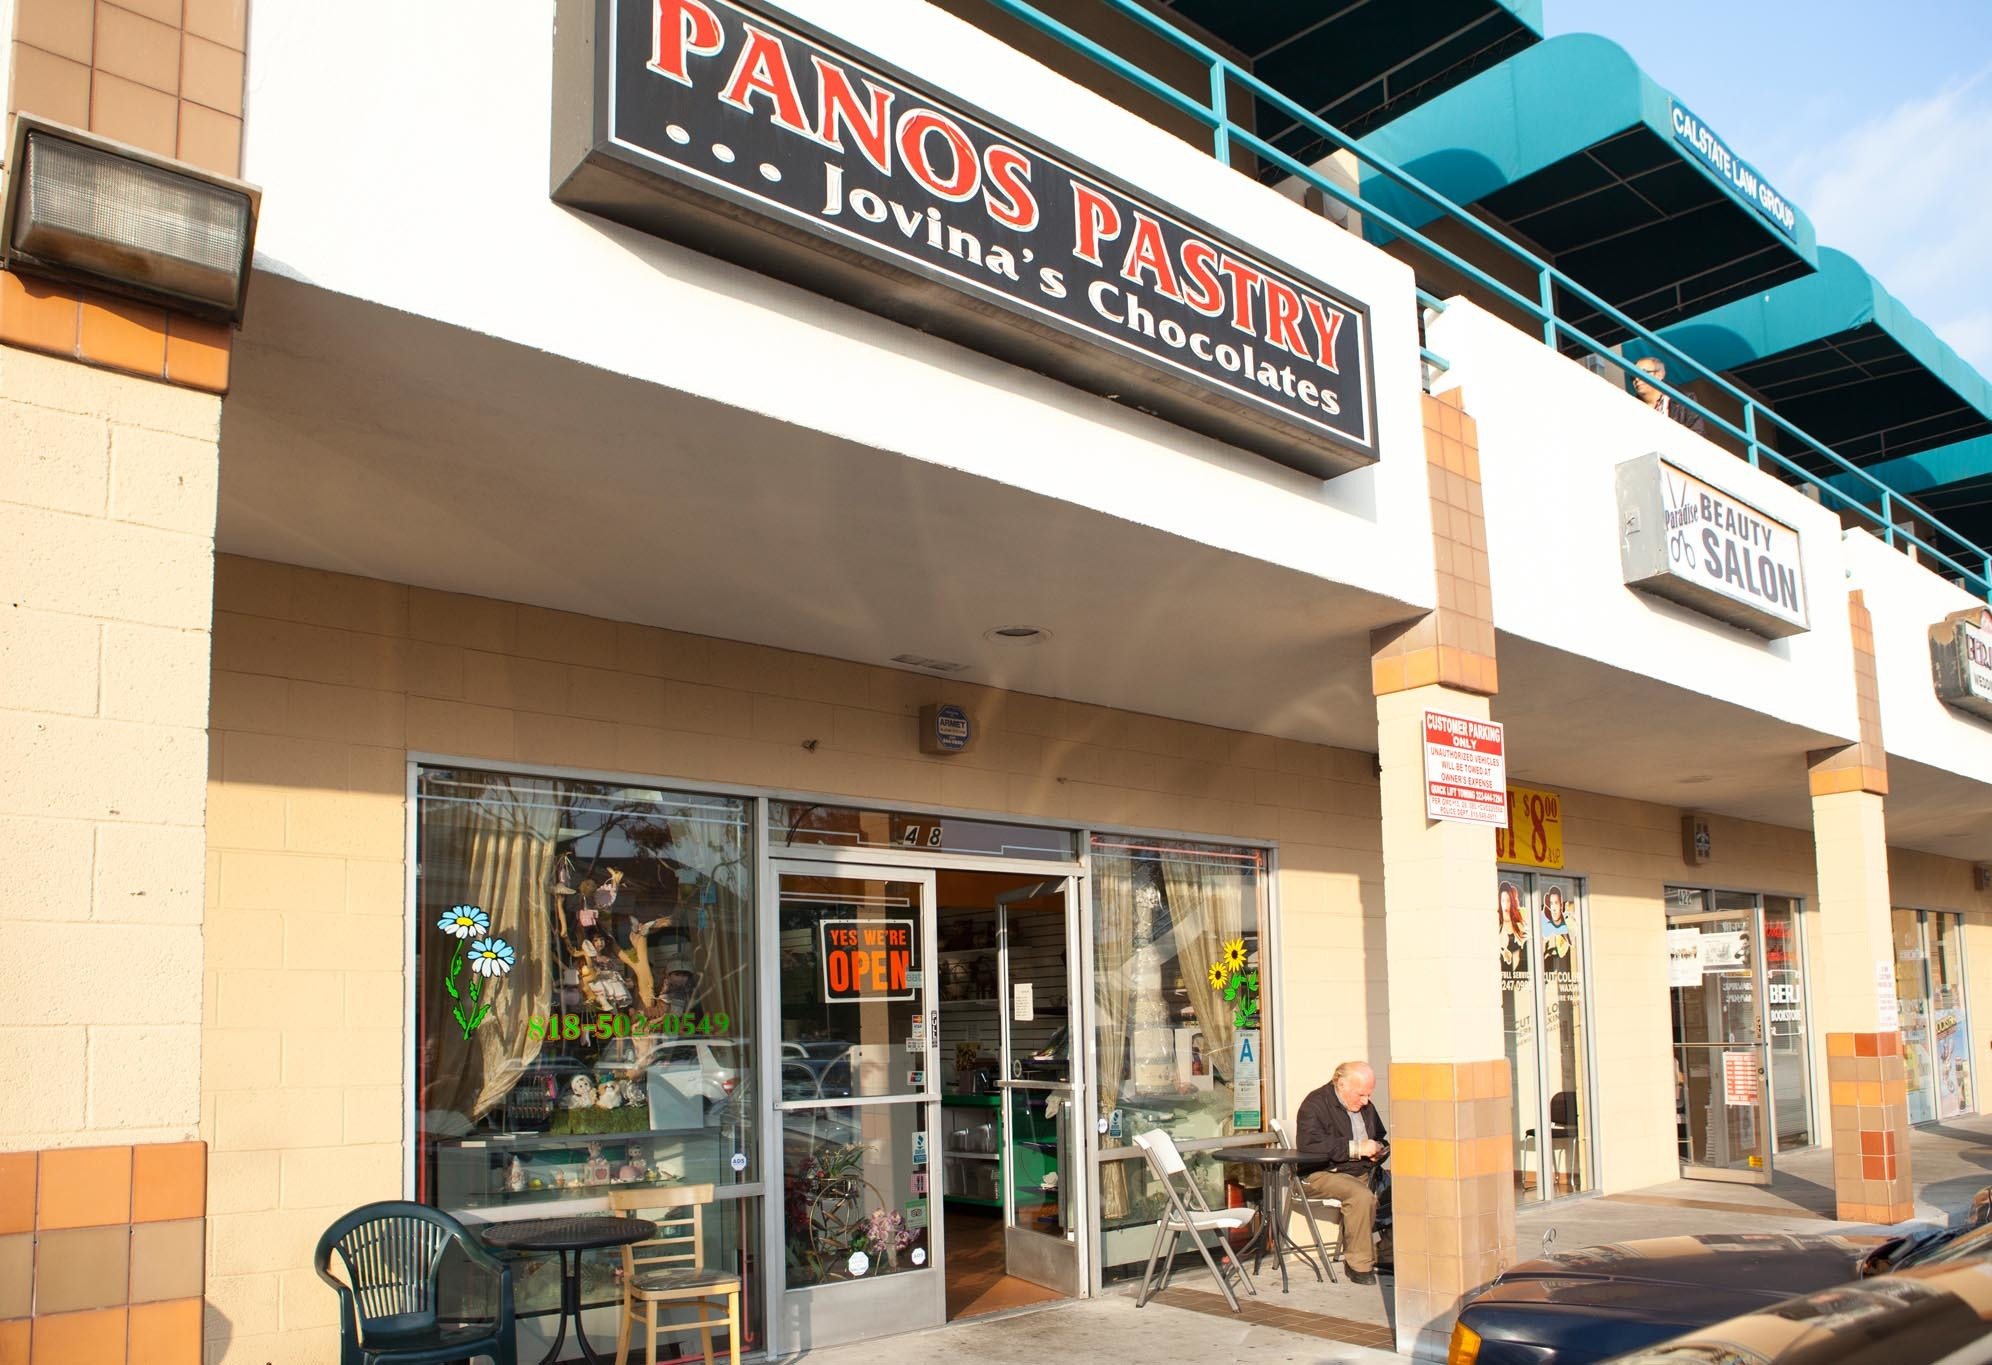 Panos Pastry